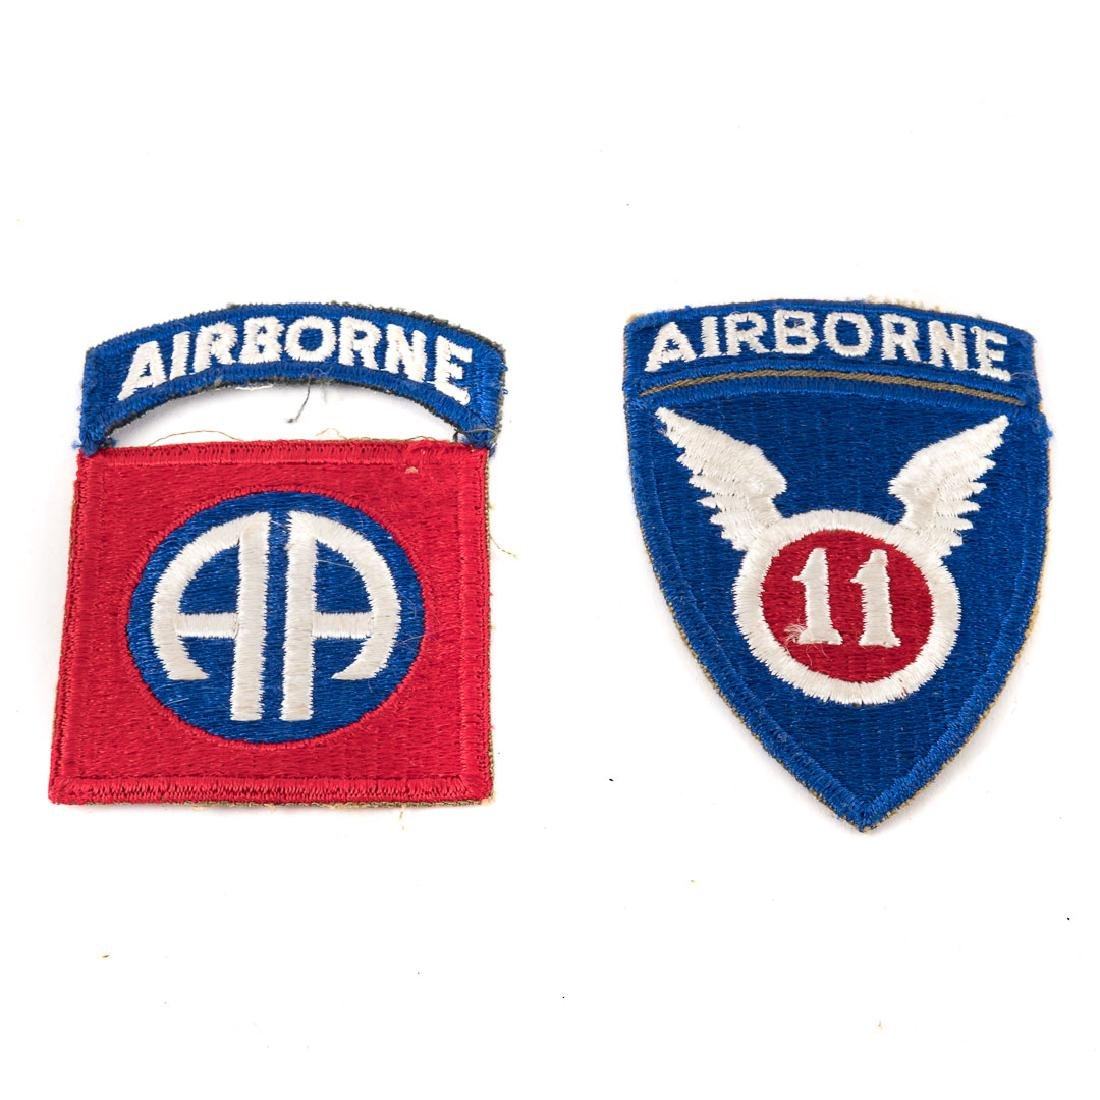 Five US Airborne Div. patches - 2